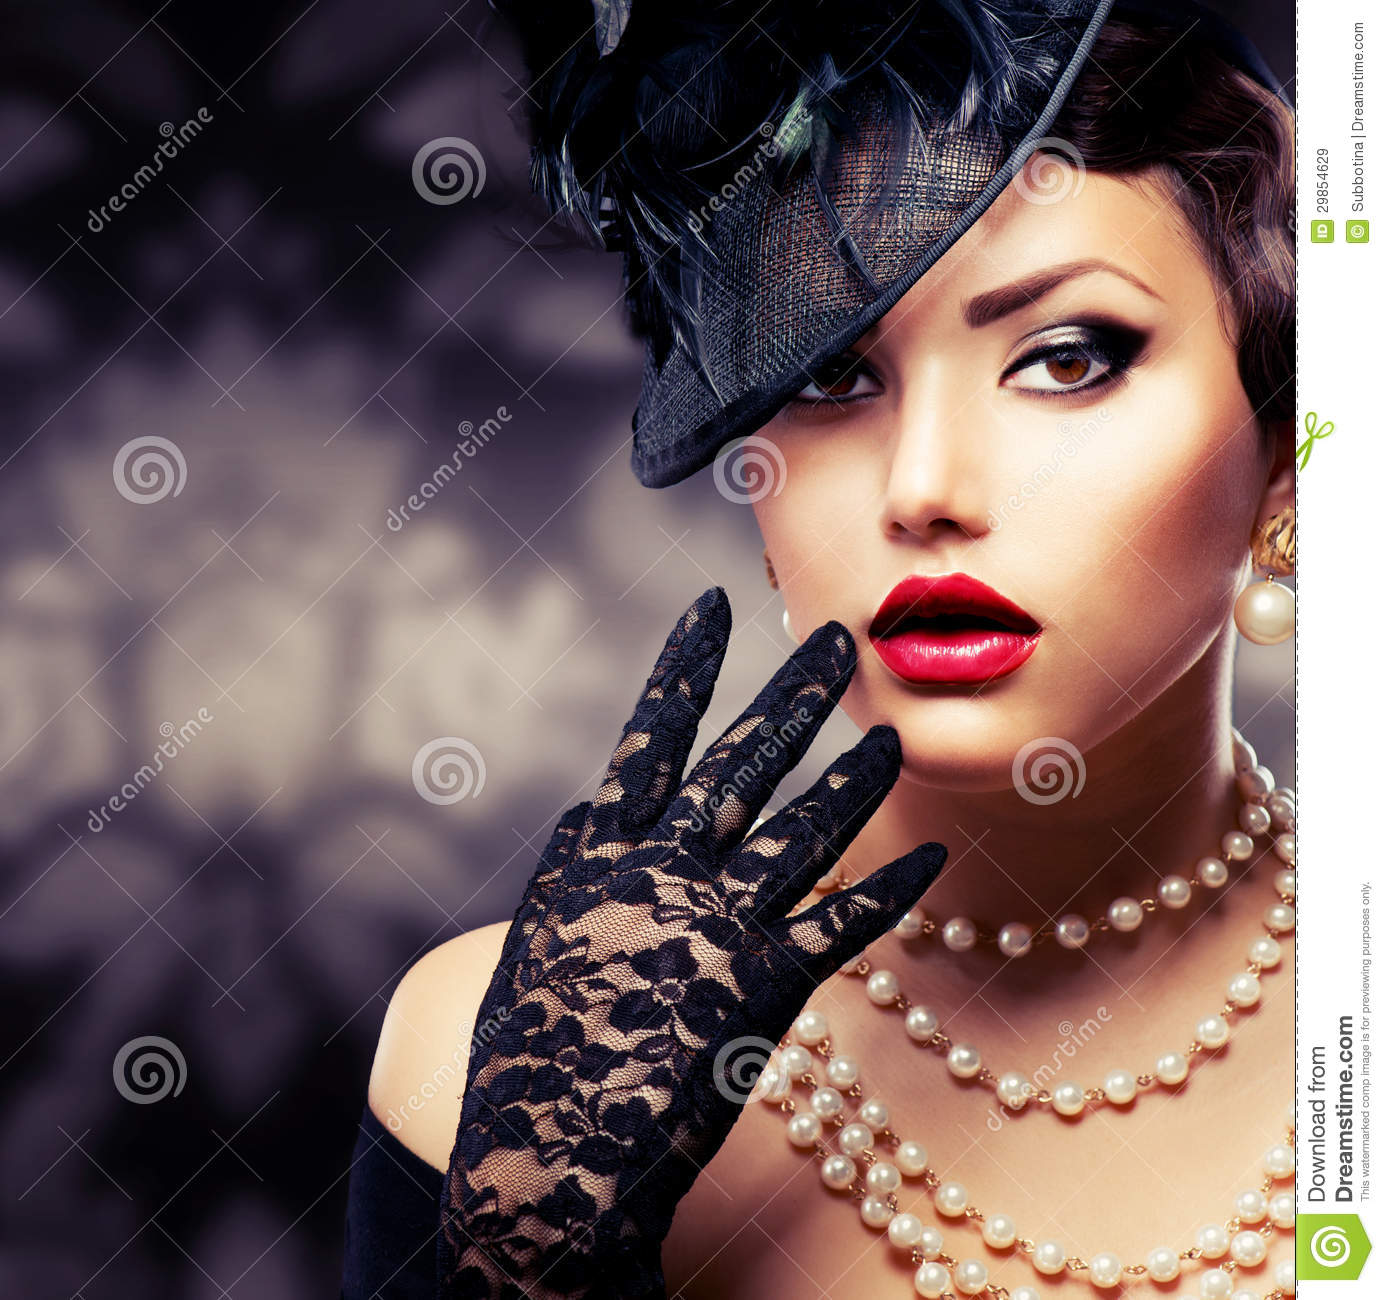 Romantic Beauty. Retro Style Royalty Free Stock Images ...